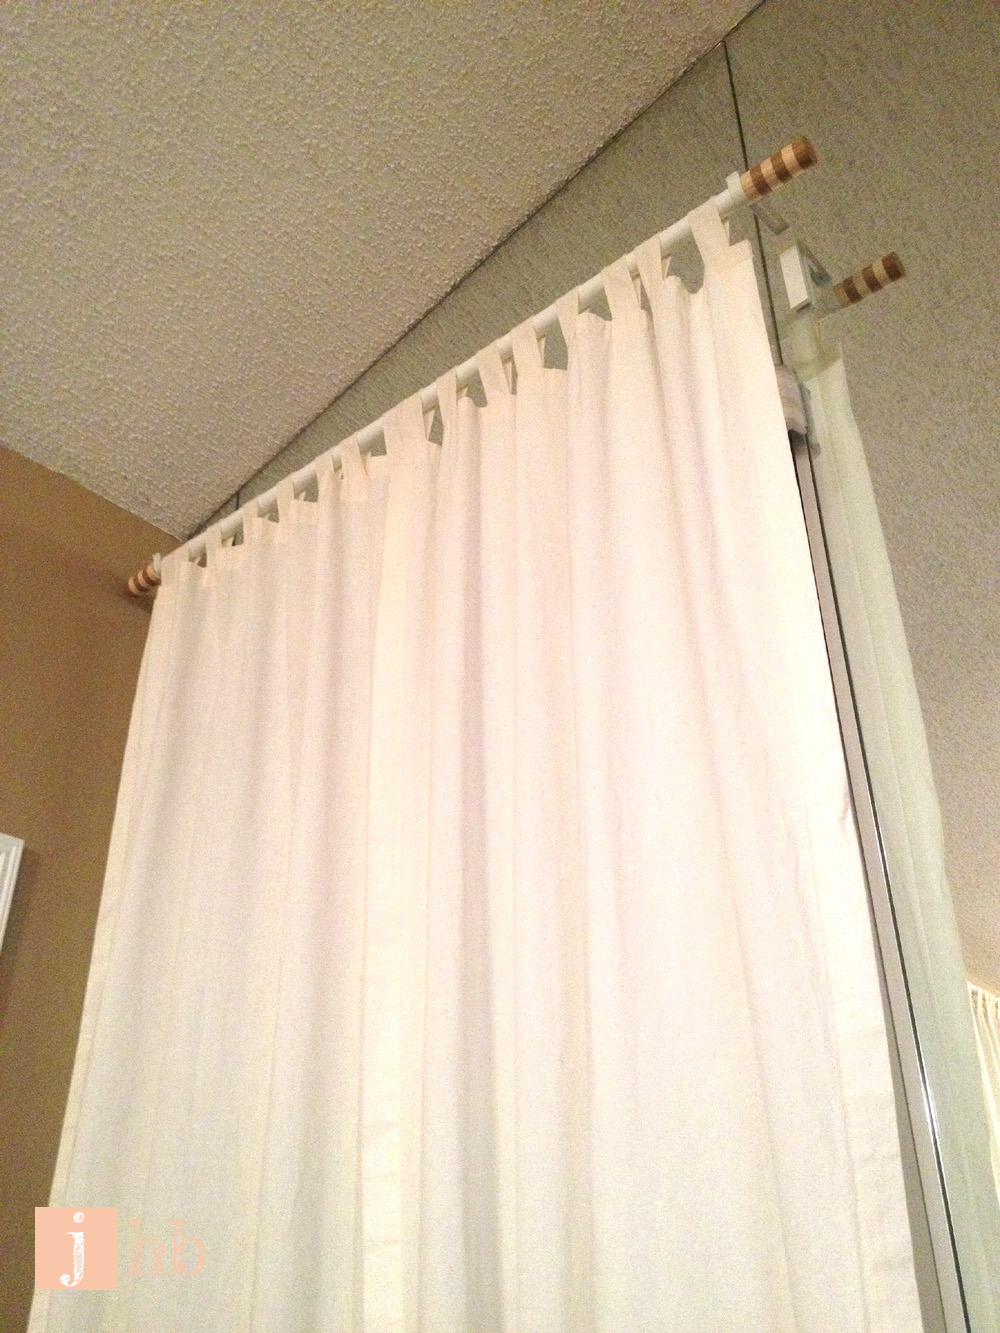 hang curtains without drilling holes | jamie's home blog